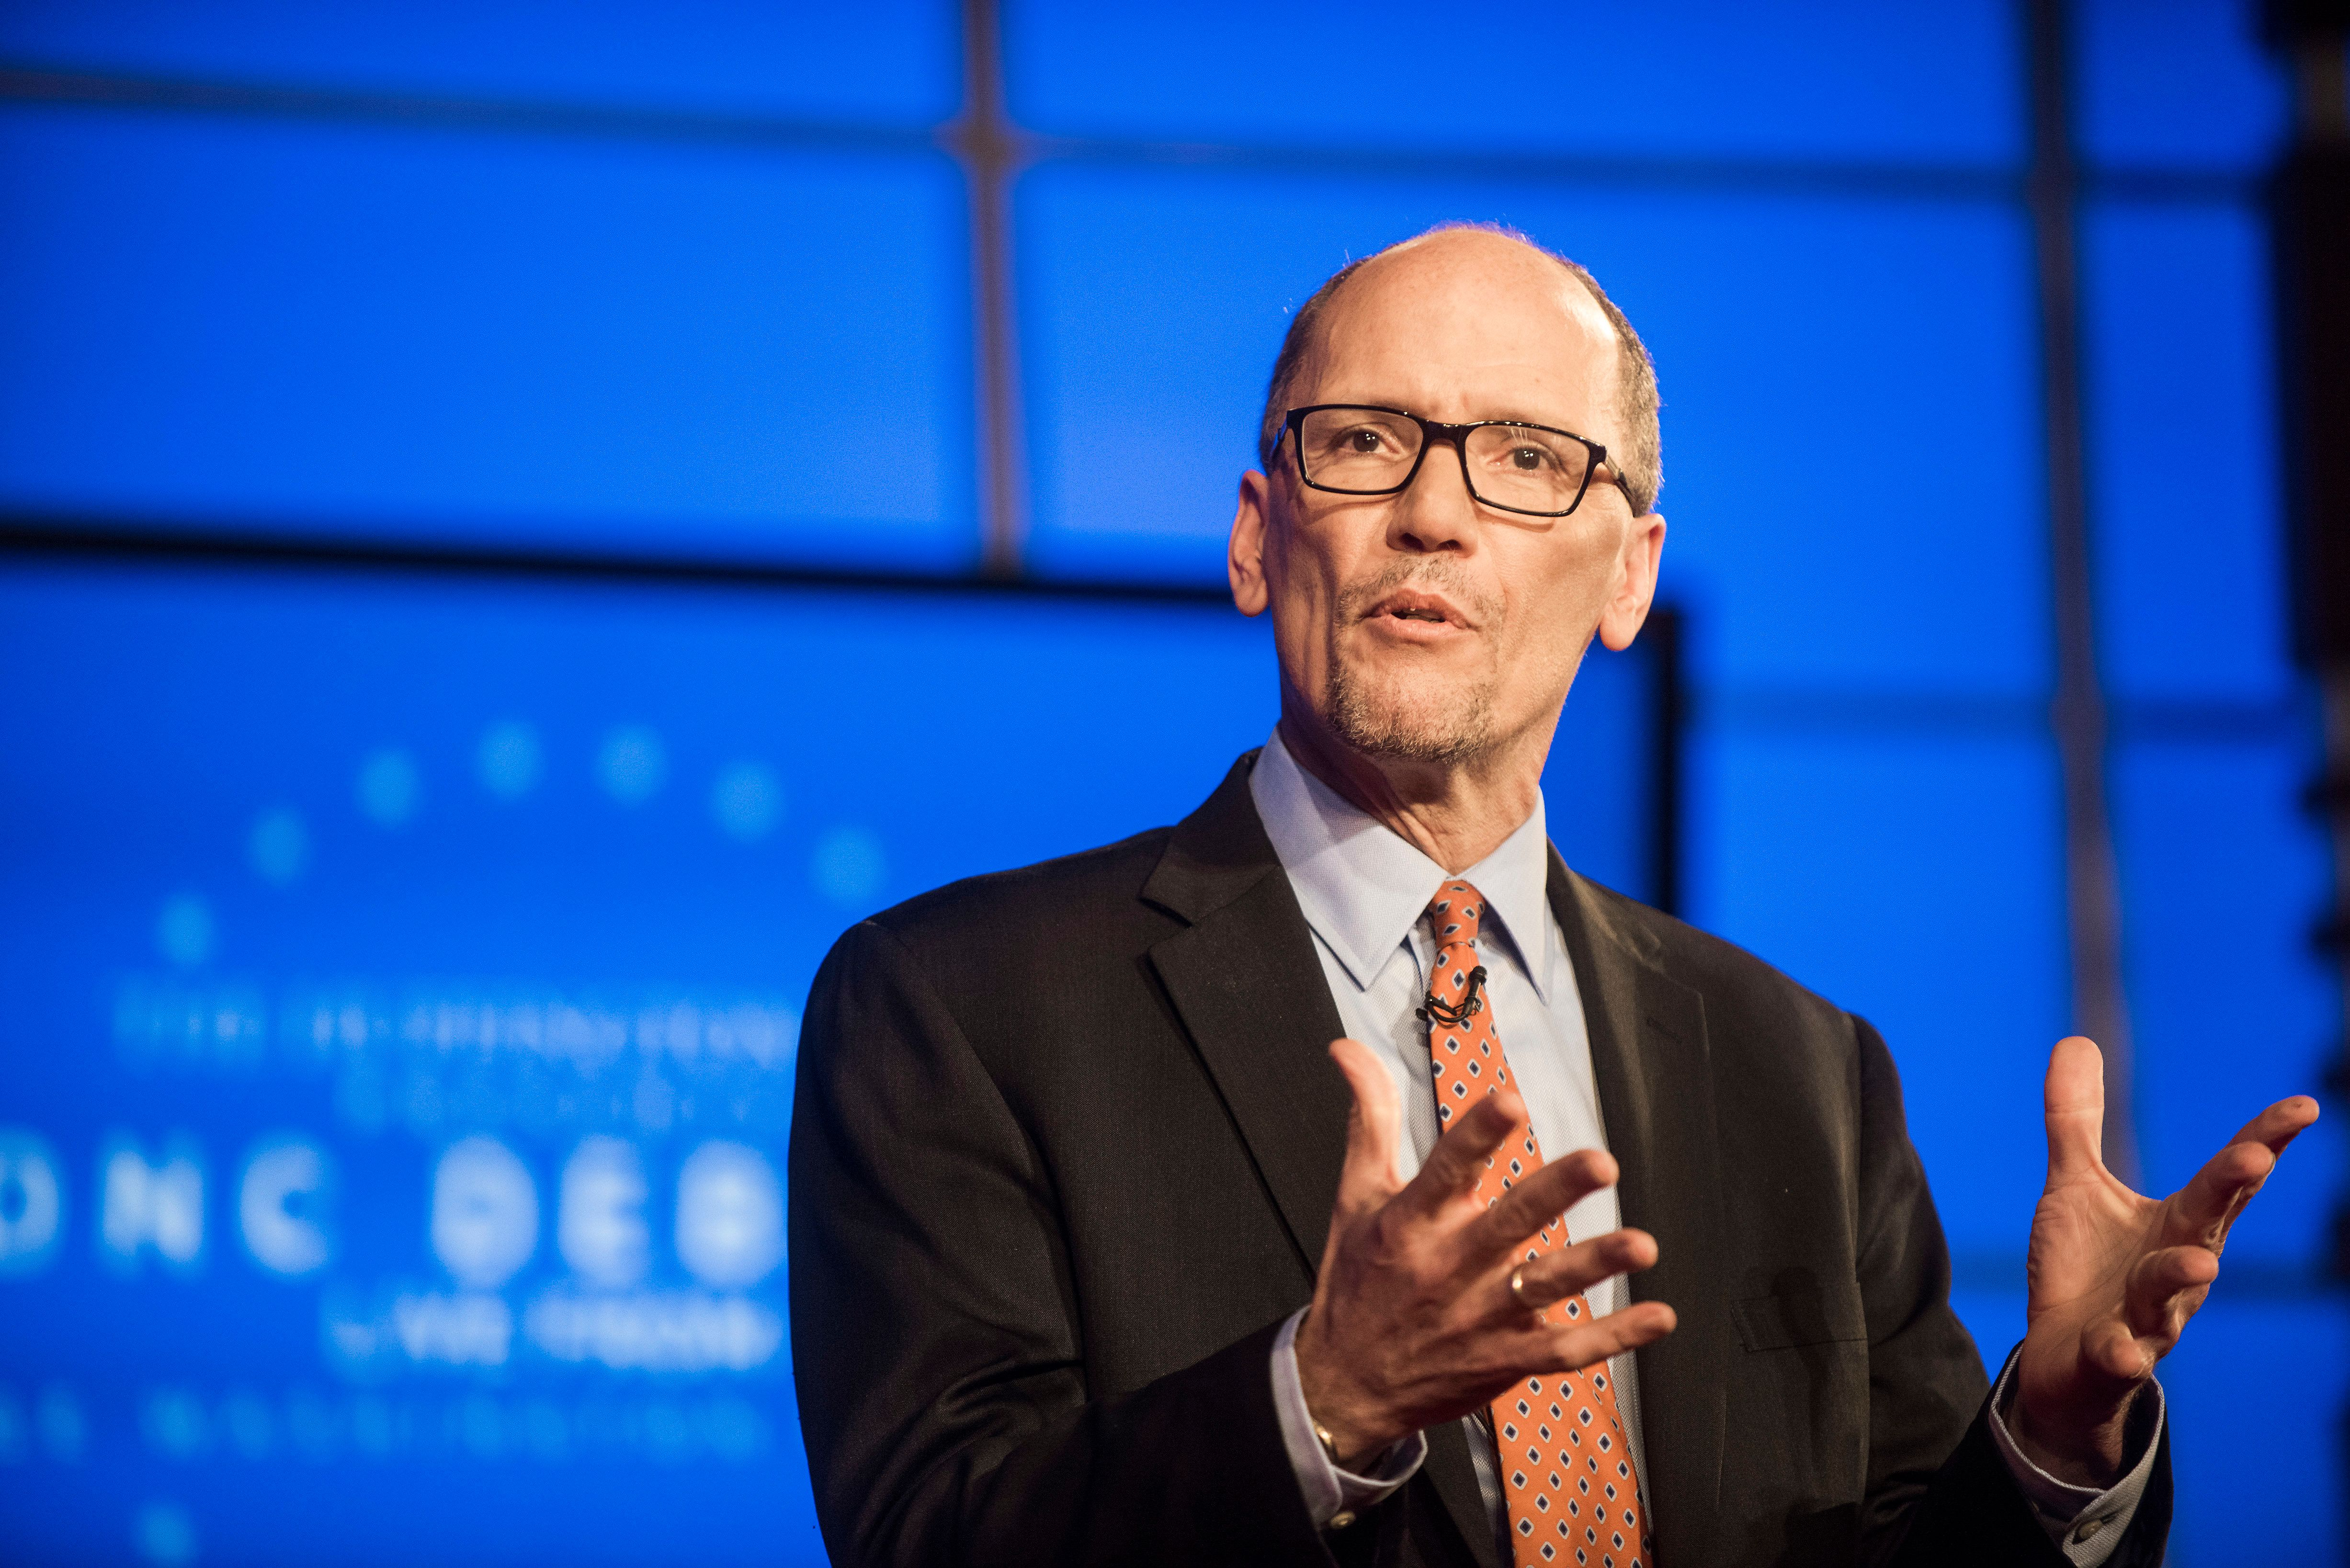 WASHINGTON, DC - JANUARY 18: Tom Perez speaks during a debate for Democratic National Committee chair hosted by the Huffington Post at George Washington University in Washington D.C. on Wednesday, Jan. 18, 2017. (Photo by Damon Dahlen, Huffington Post) *** Local Caption ***